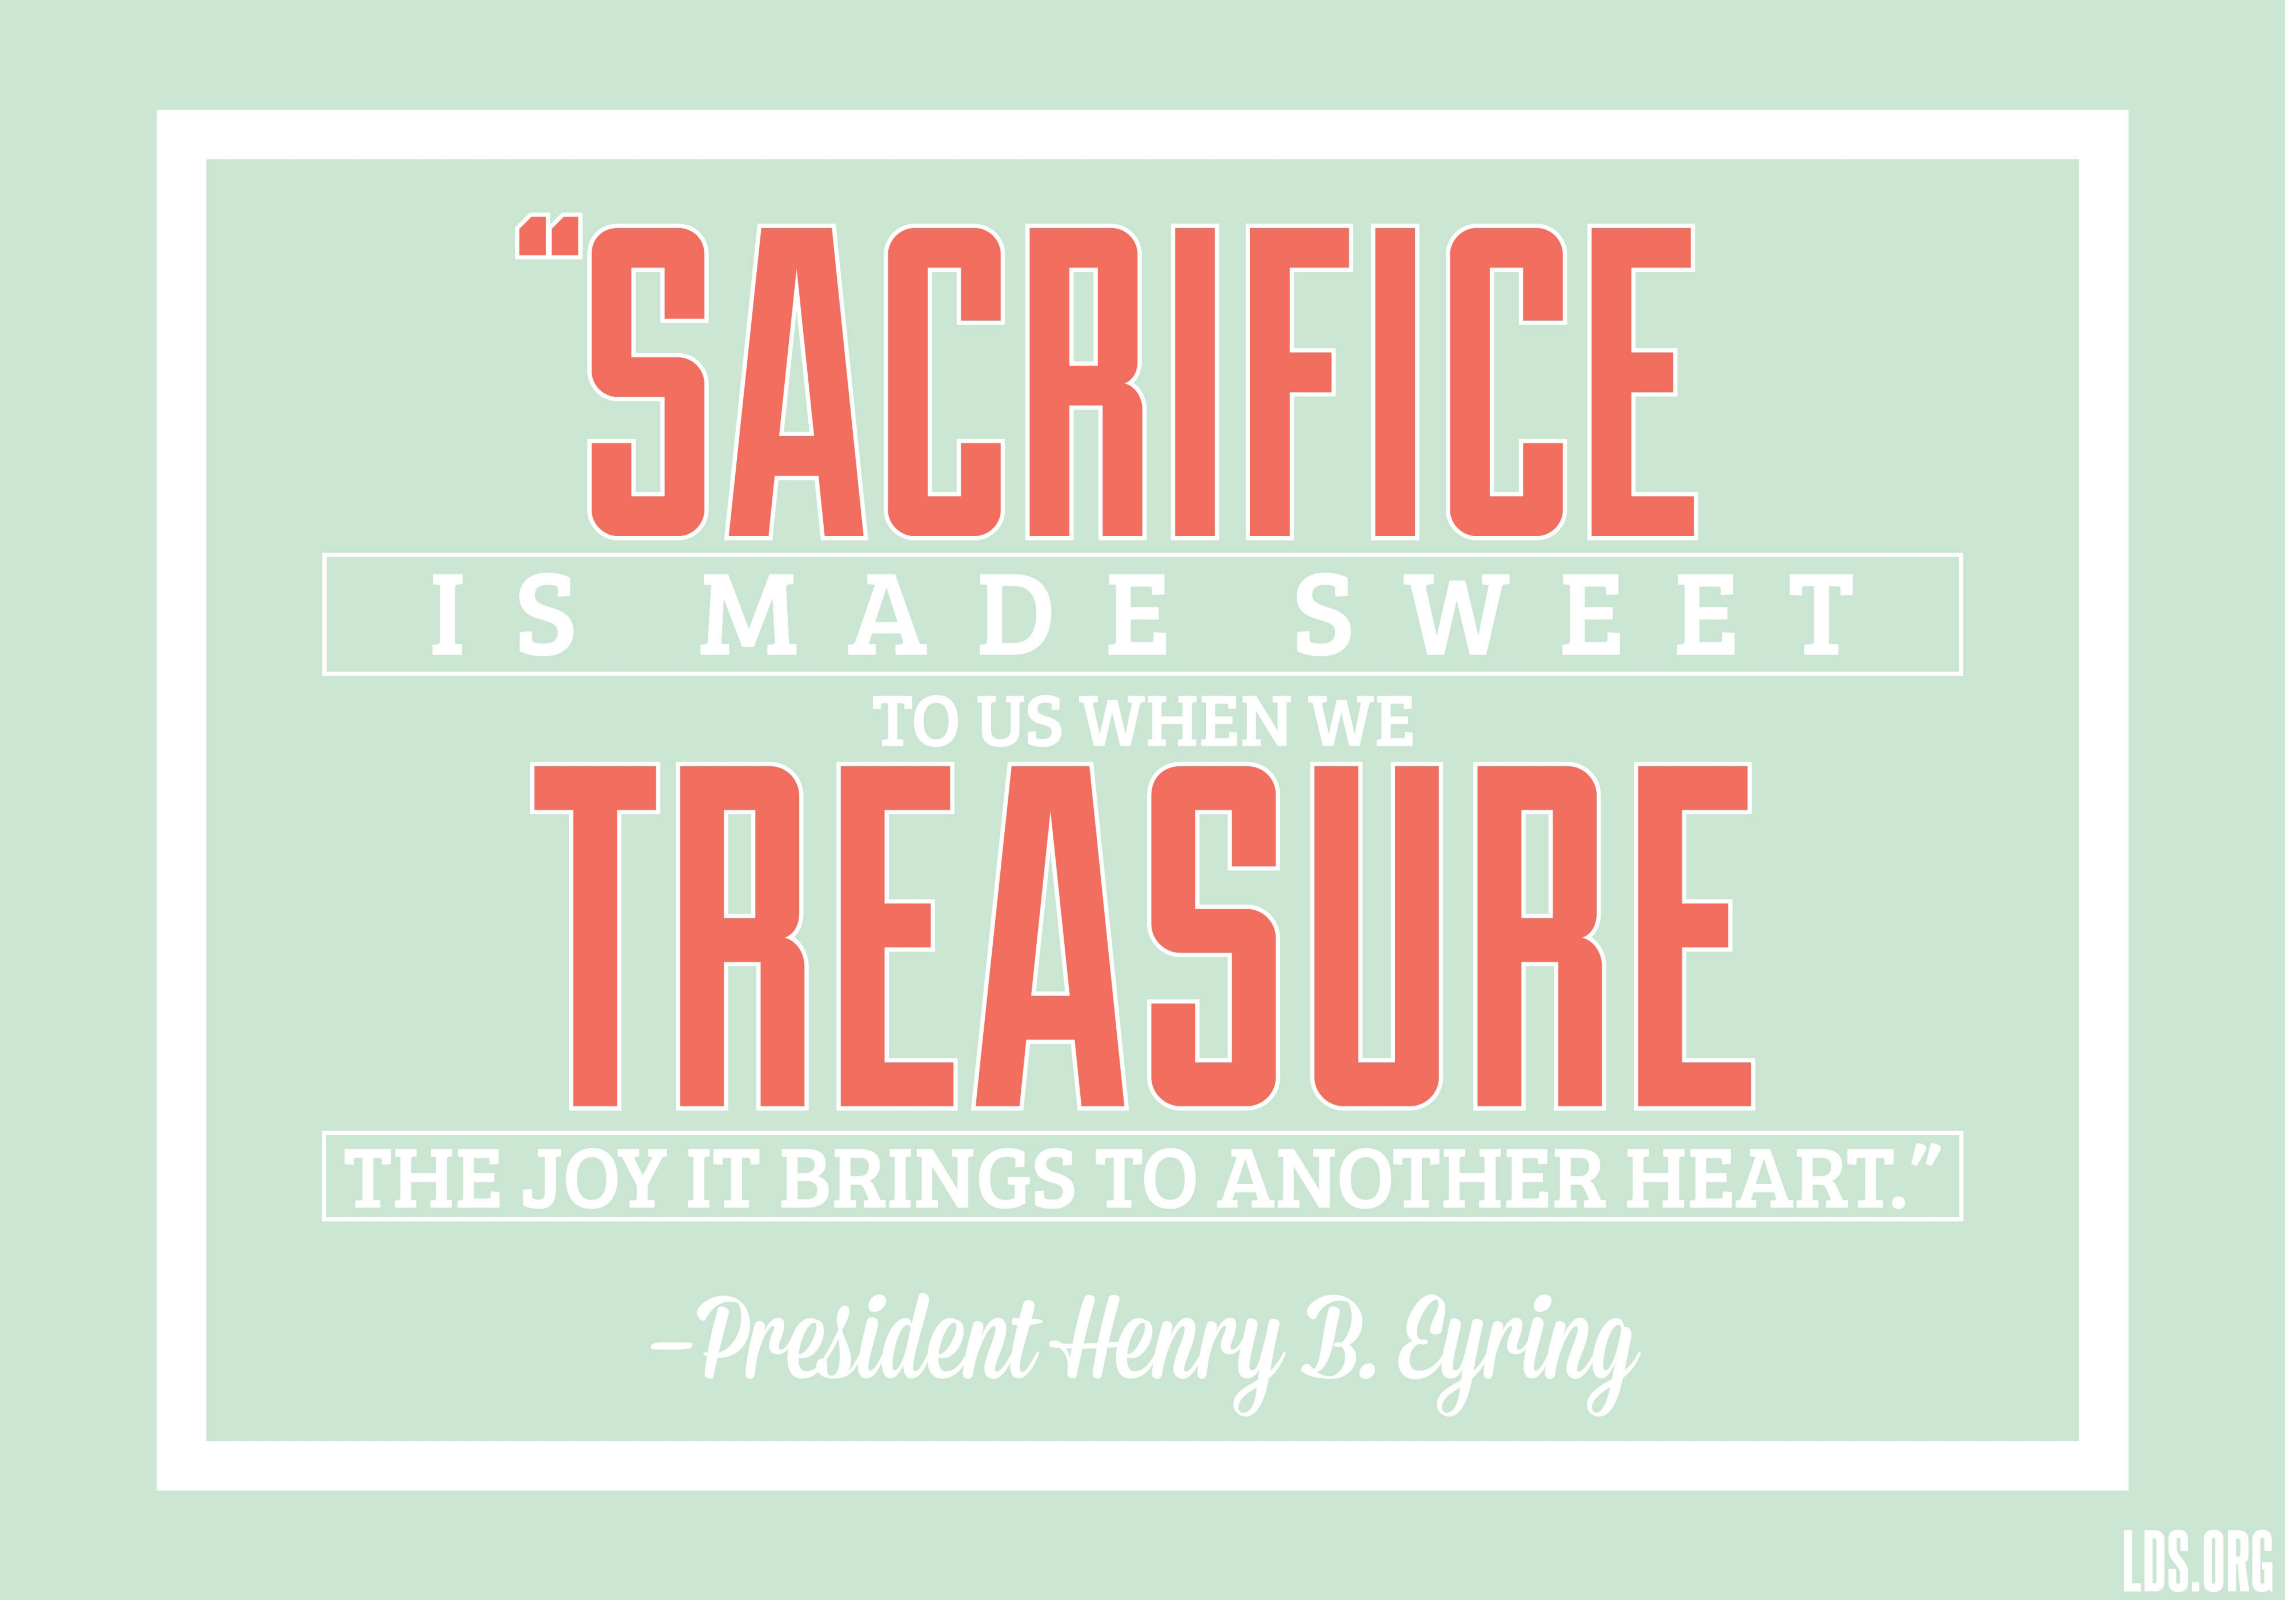 Lds missionary quotes or thoughts quotesgram - Pinterest